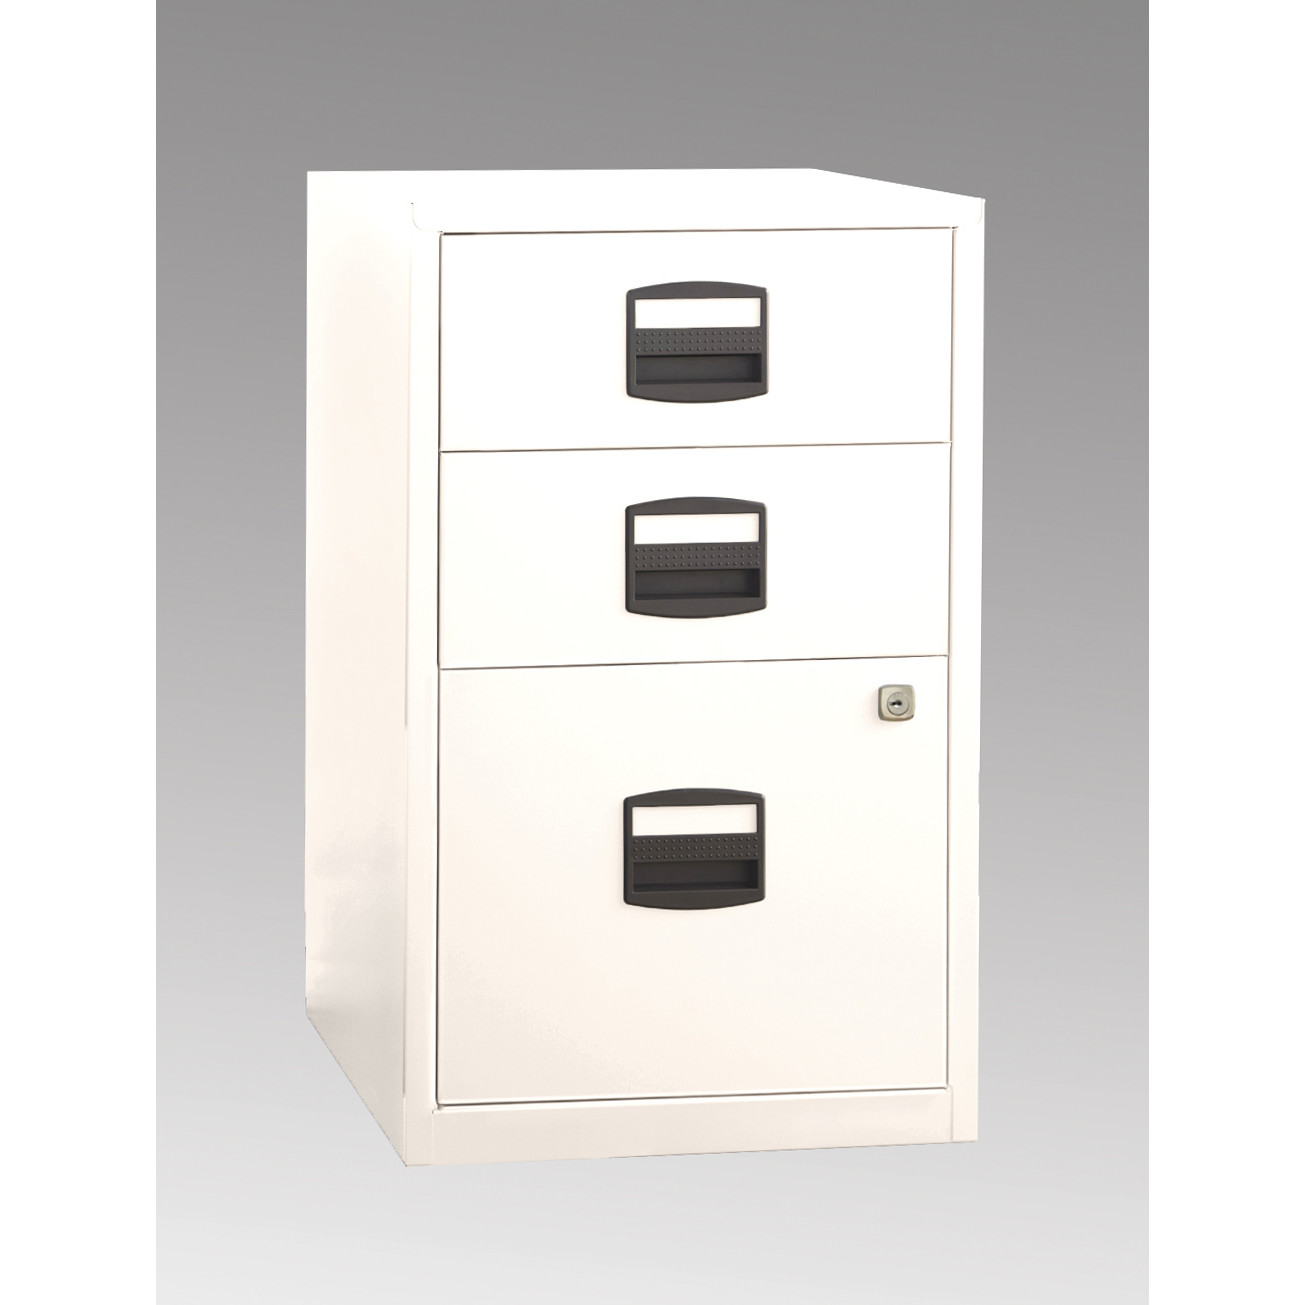 Brilliant Bisley File Cabinet for Best File Storage Ideas: Bisley Filing Cabinet 3 Drawer | Bisley File Cabinet | File Cabinet Inserts